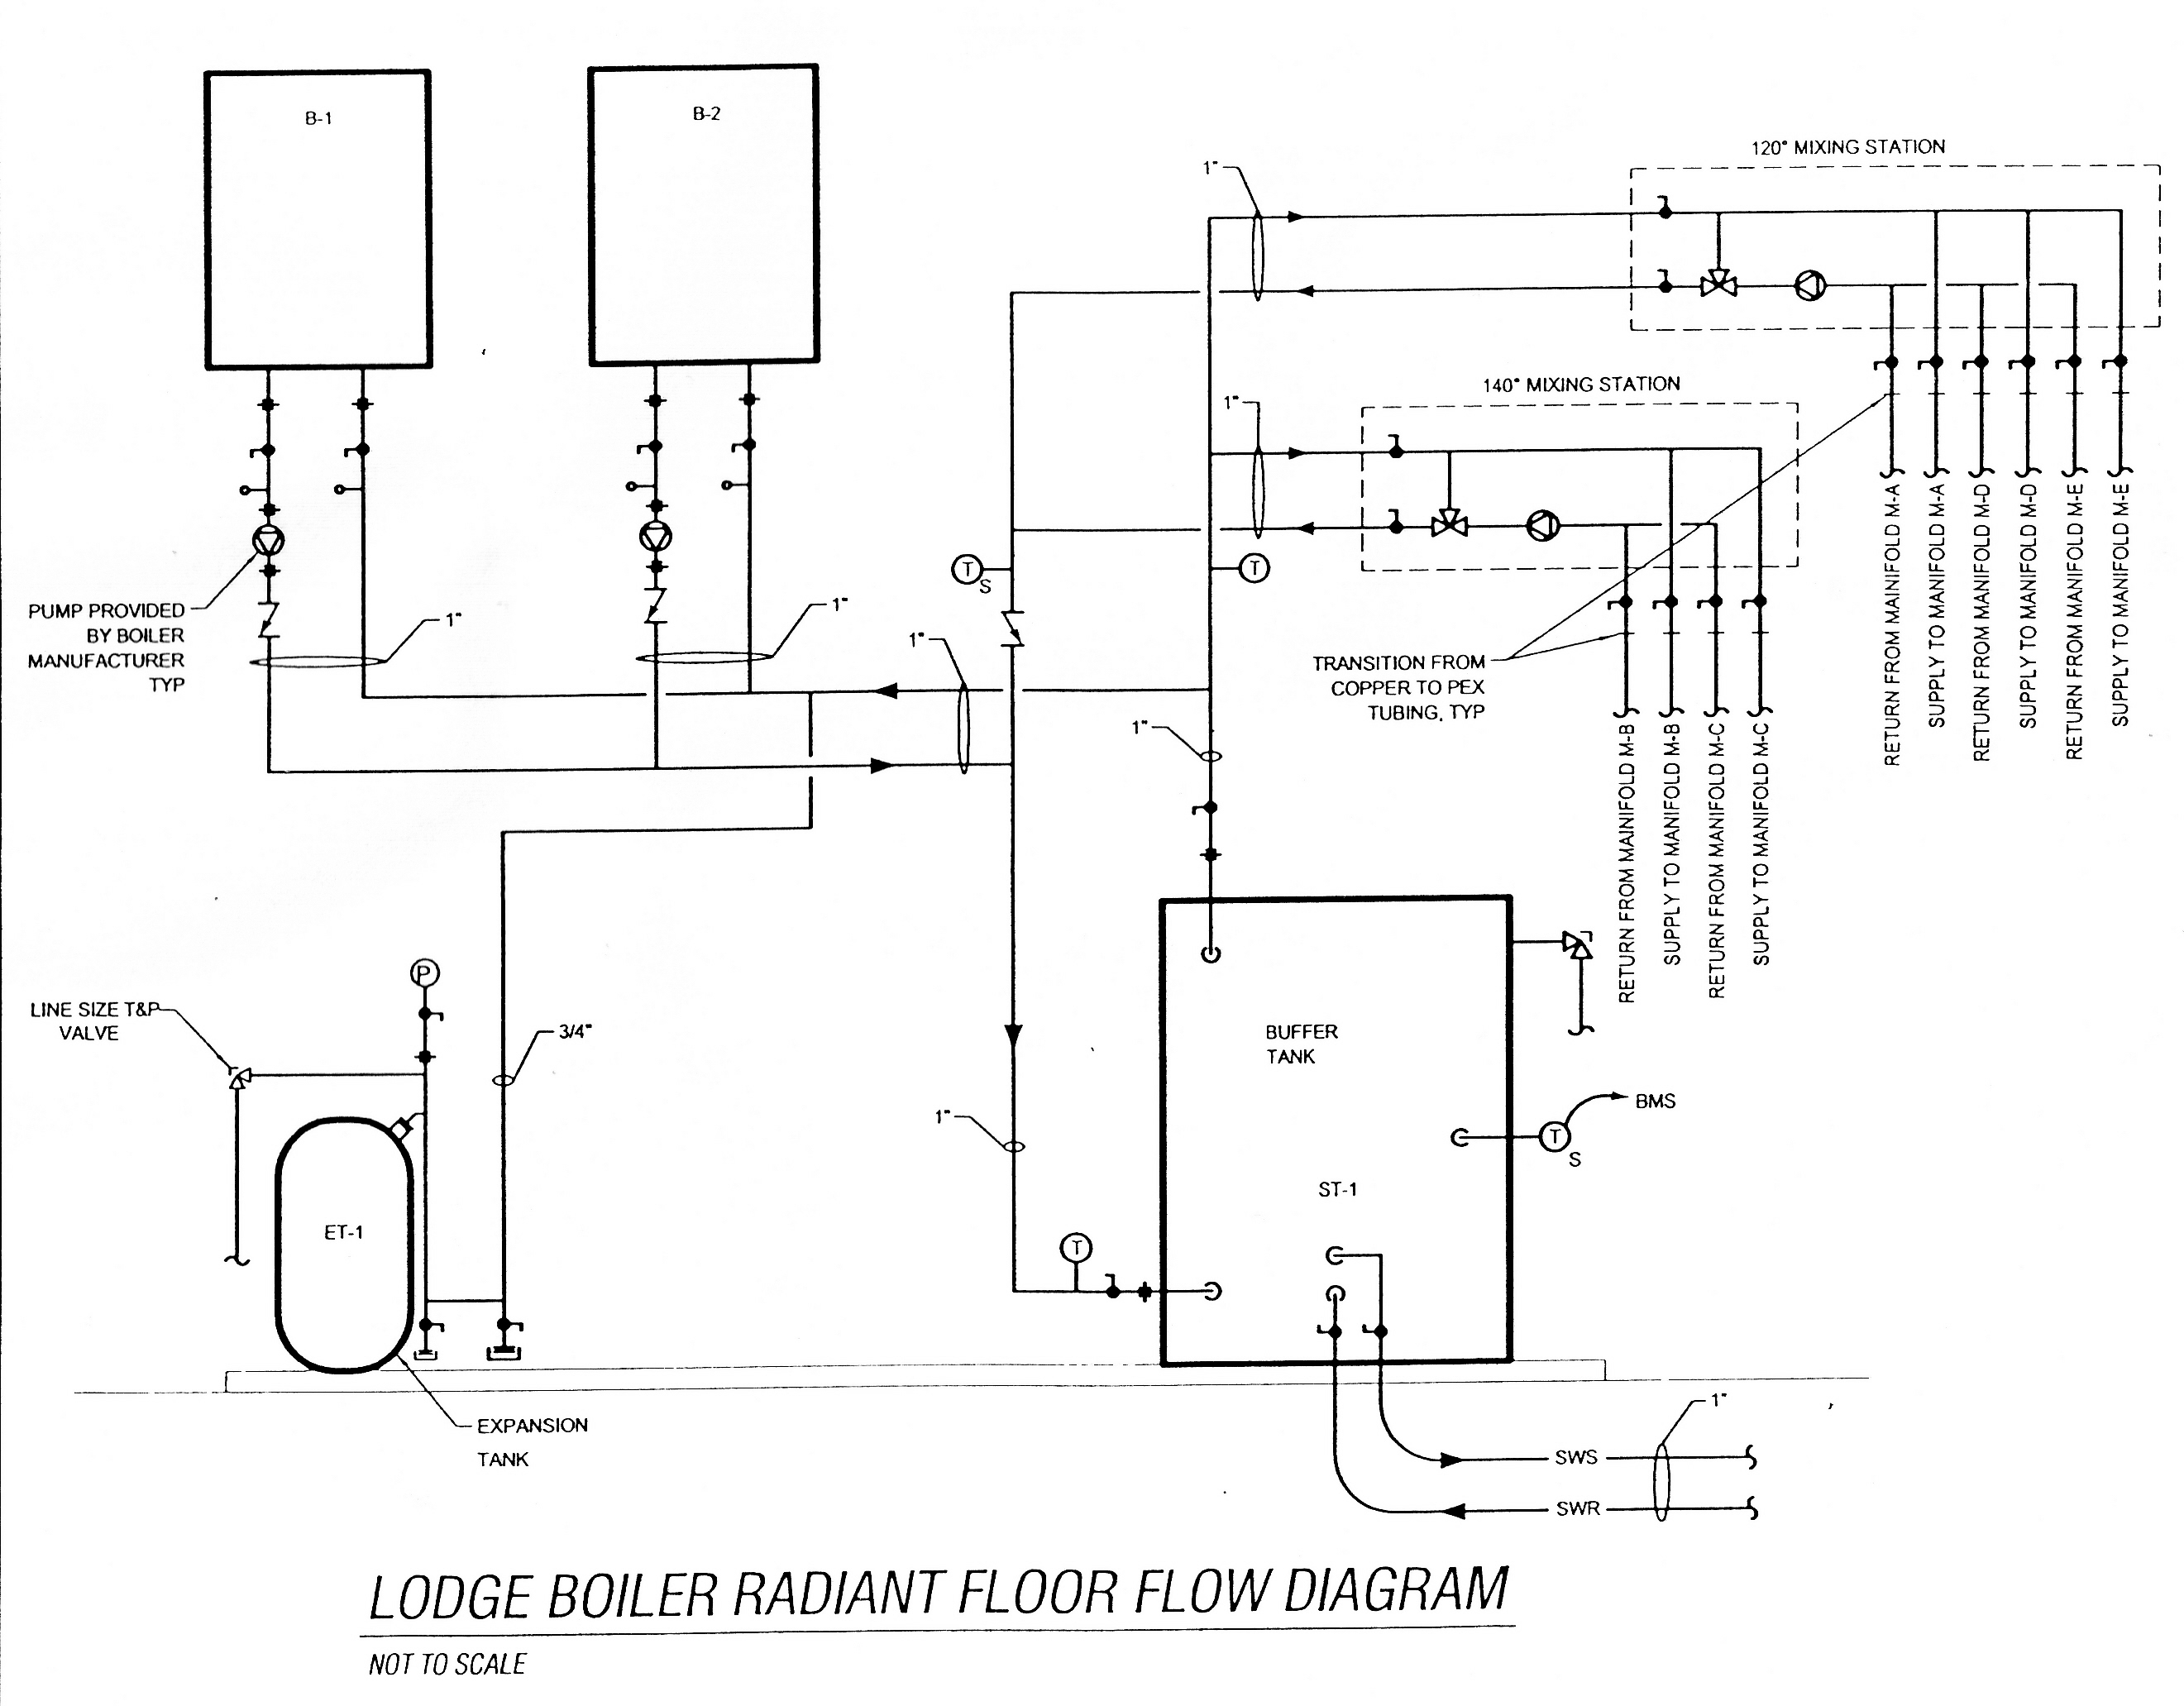 Electric Hot Water Tank Plumbing Diagram Trusted Wiring Schematics Buffer Piping Block And Schematic Diagrams U2022